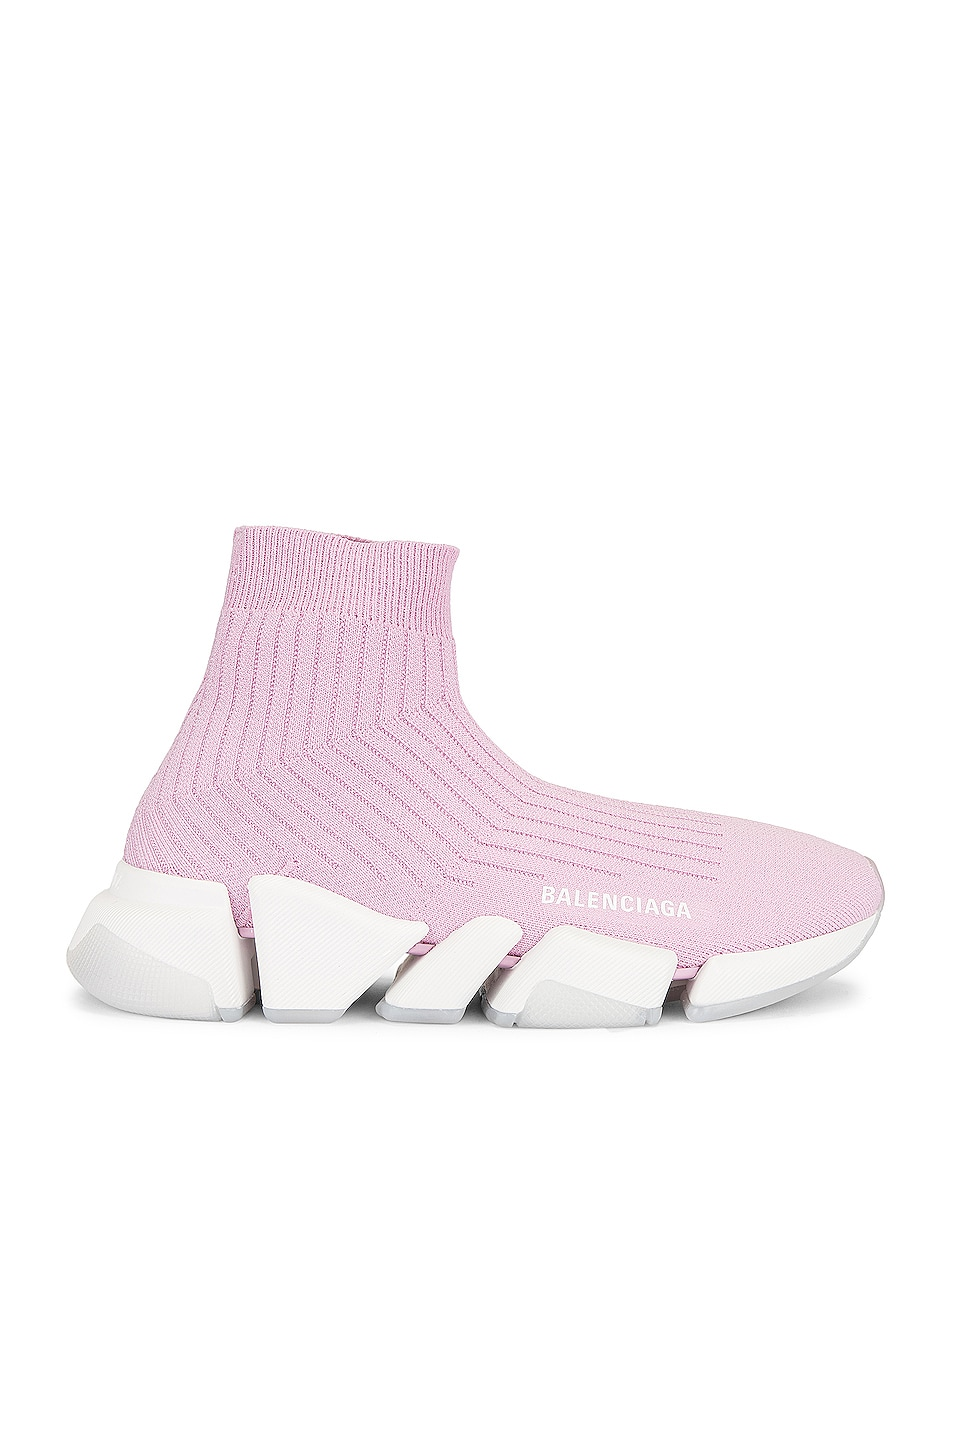 Image 1 of Balenciaga Speed 2.0 Lt Sneakers in Pink & White & Transparent